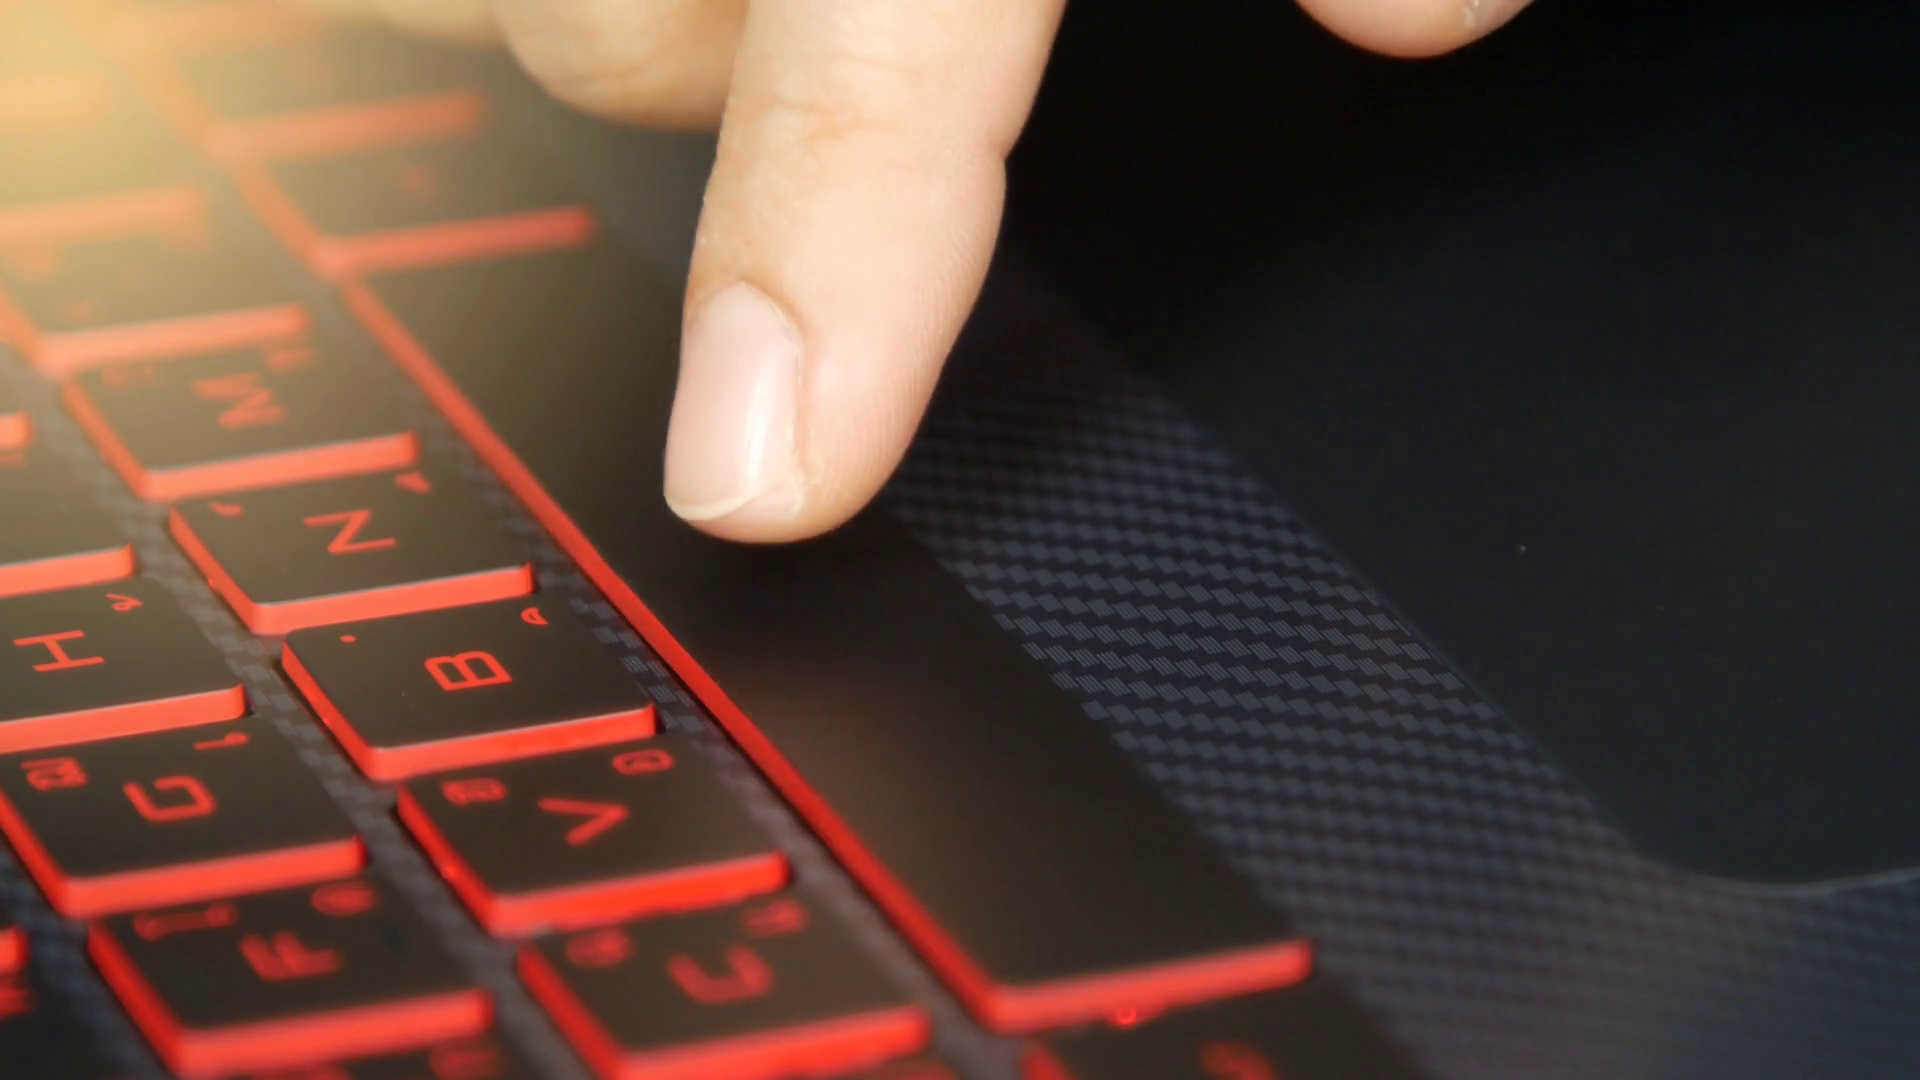 videoblocks-close-up-of-a-finger-pressing-space-bar-button-on-a-keyboard-laptop-keyboard_bvhvwrere_thumbnail-full10